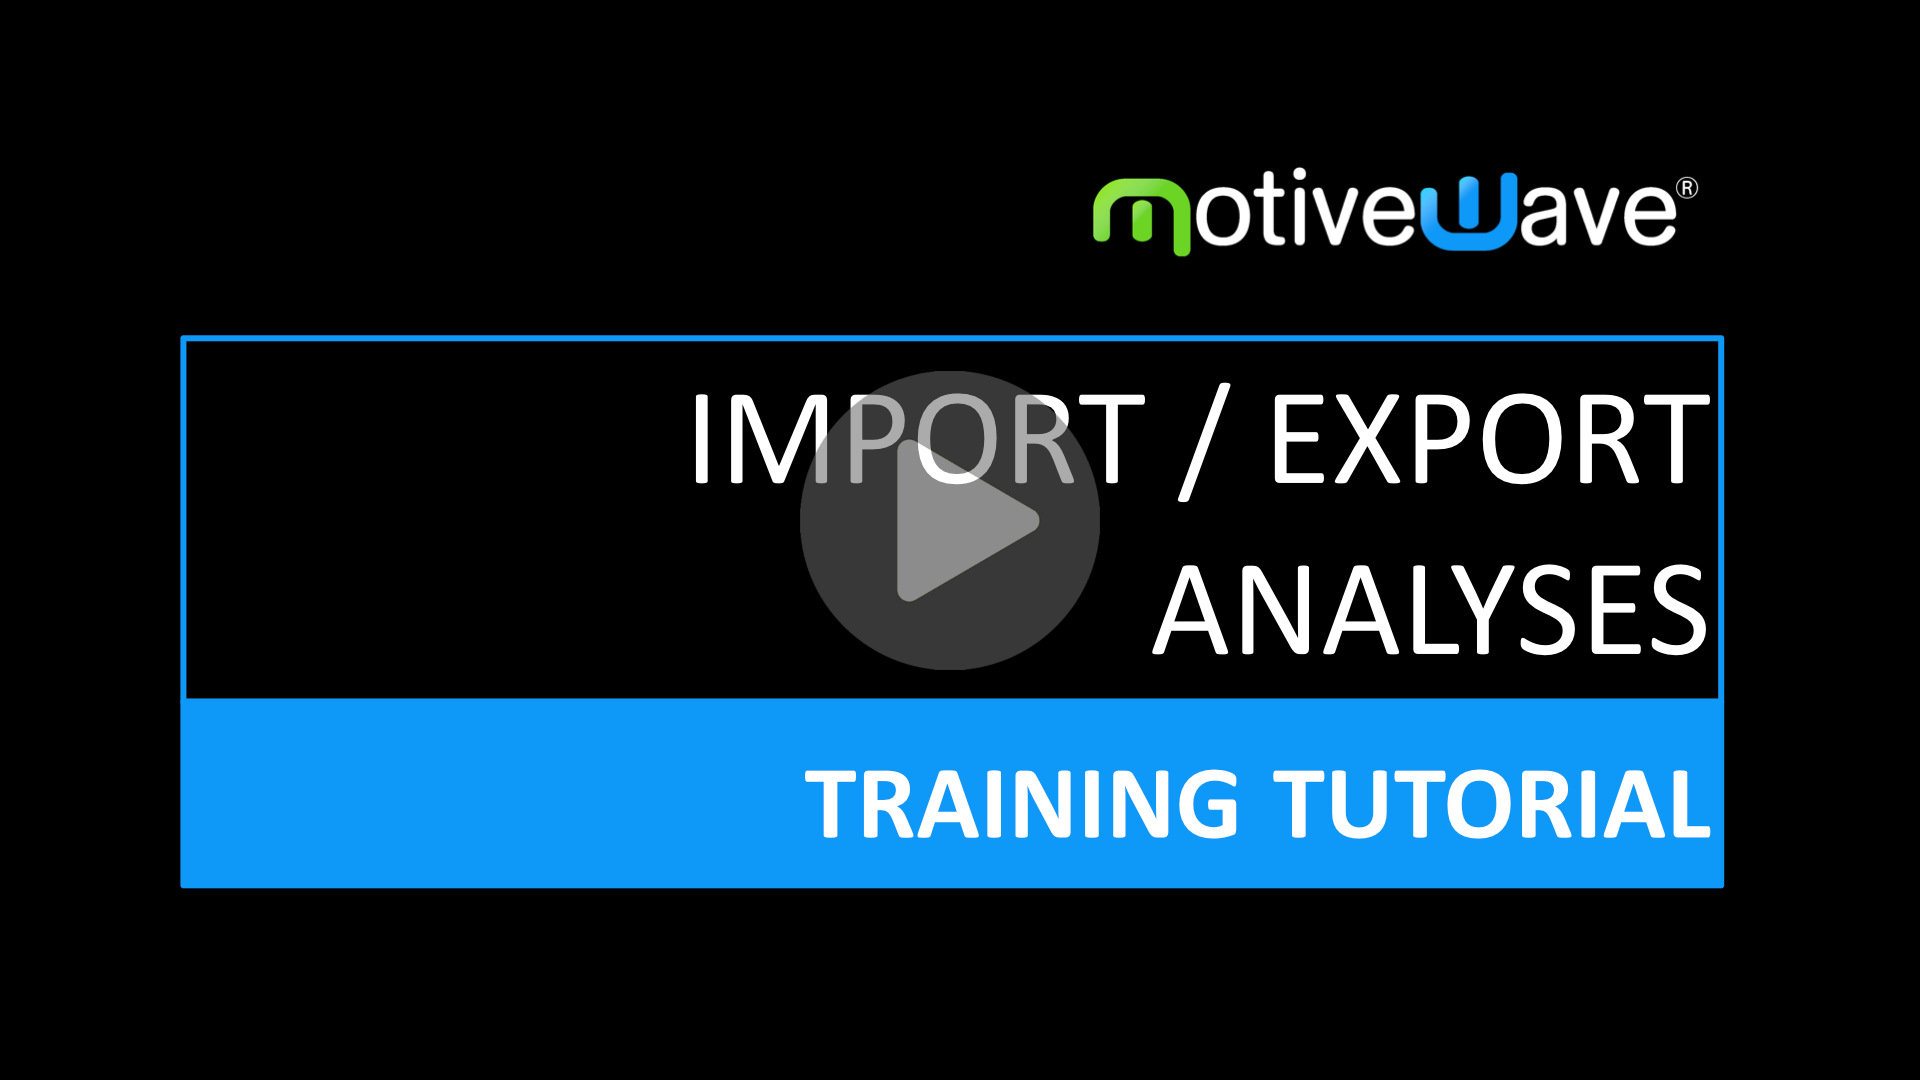 Import/Export Analyses